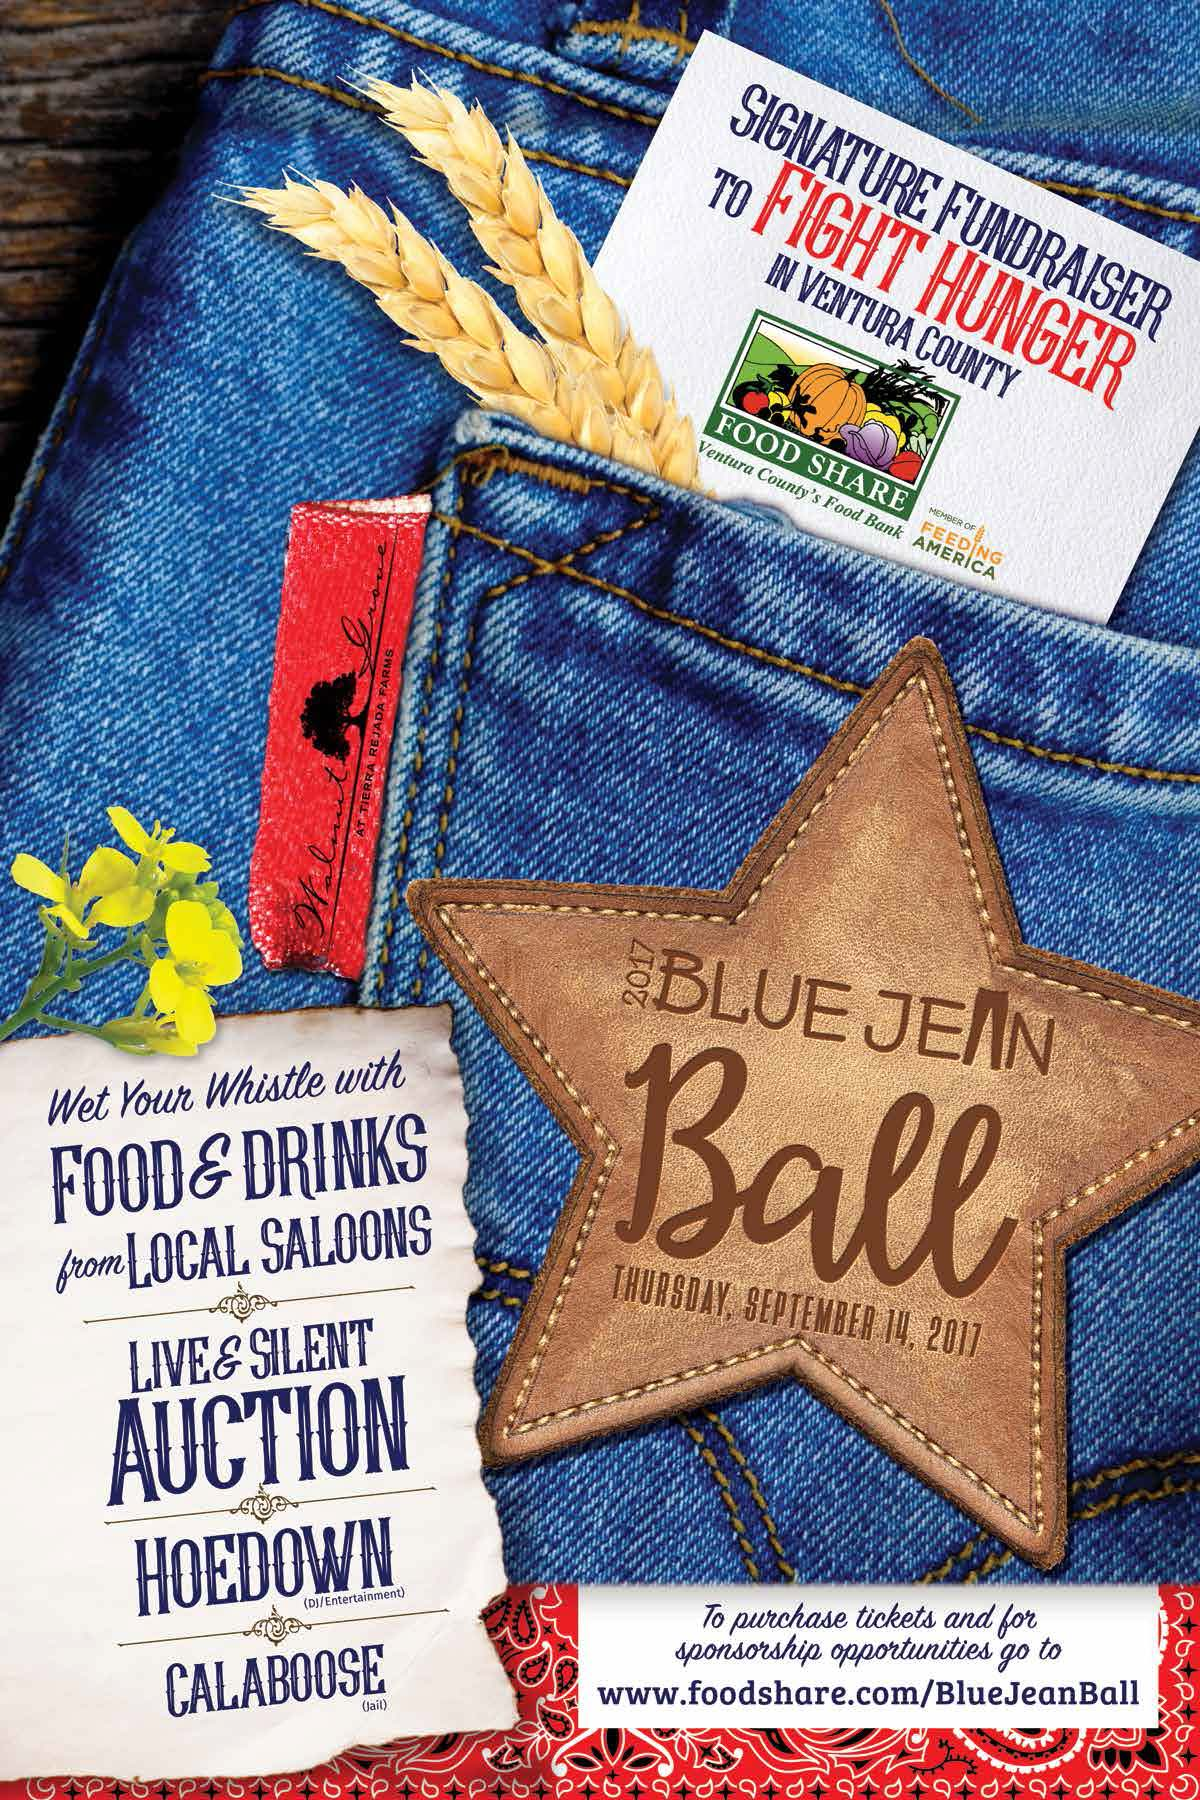 Farmers Auto Insurance >> Blue Jean Ball - FOOD Share's Signature Fundraiser Tickets, Thu, Sep 14, 2017 at 5:00 PM ...